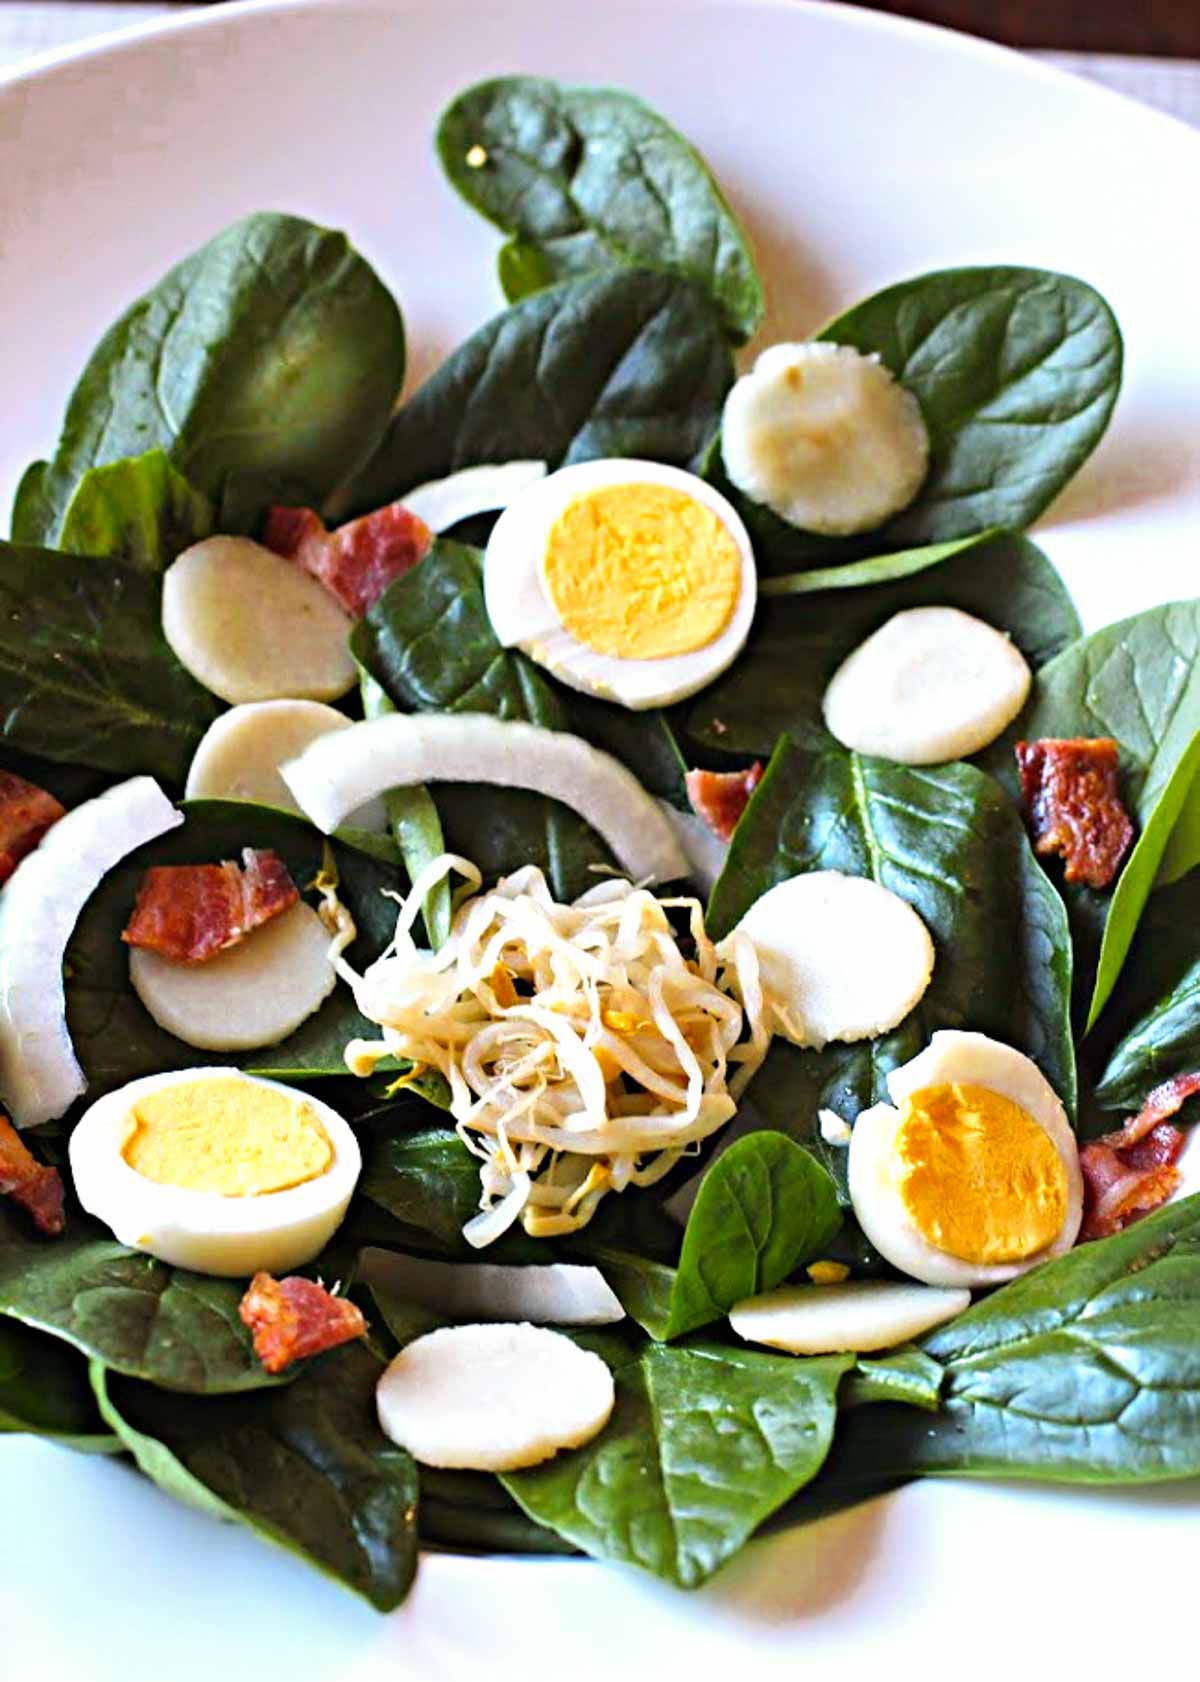 Spinach salad garnished with sliced hardboiled eggs and bacon